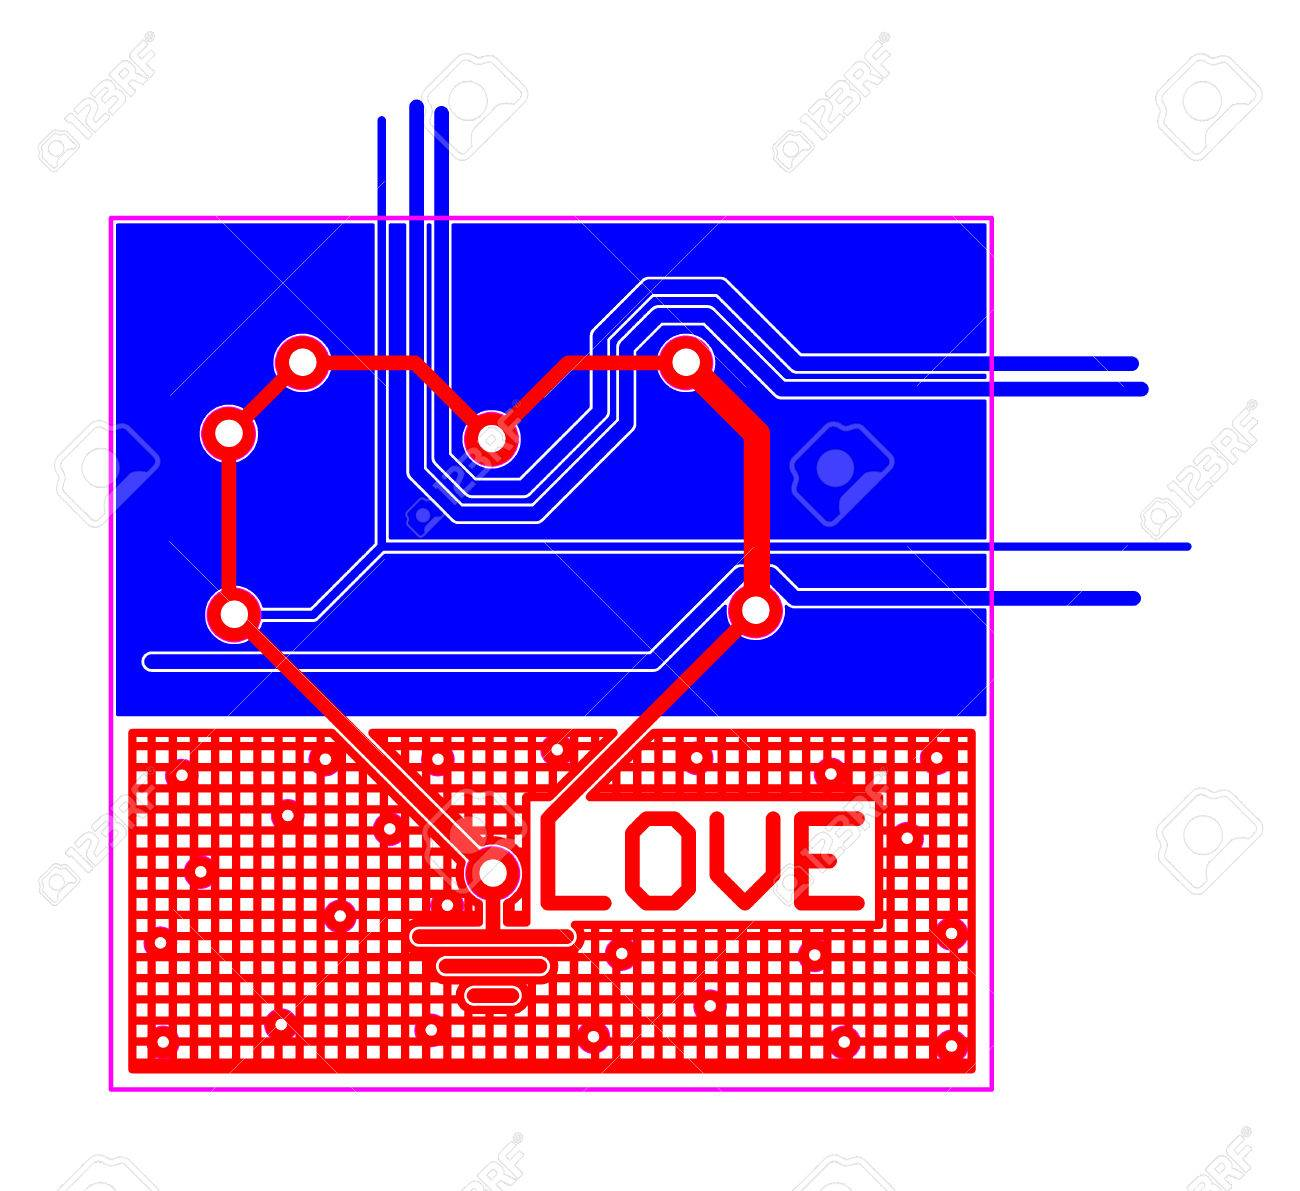 Electronic Printed Circuit Board Pcb With Heart Shape And Text Production Buy Boardpcb Love Stock Photo 51432586